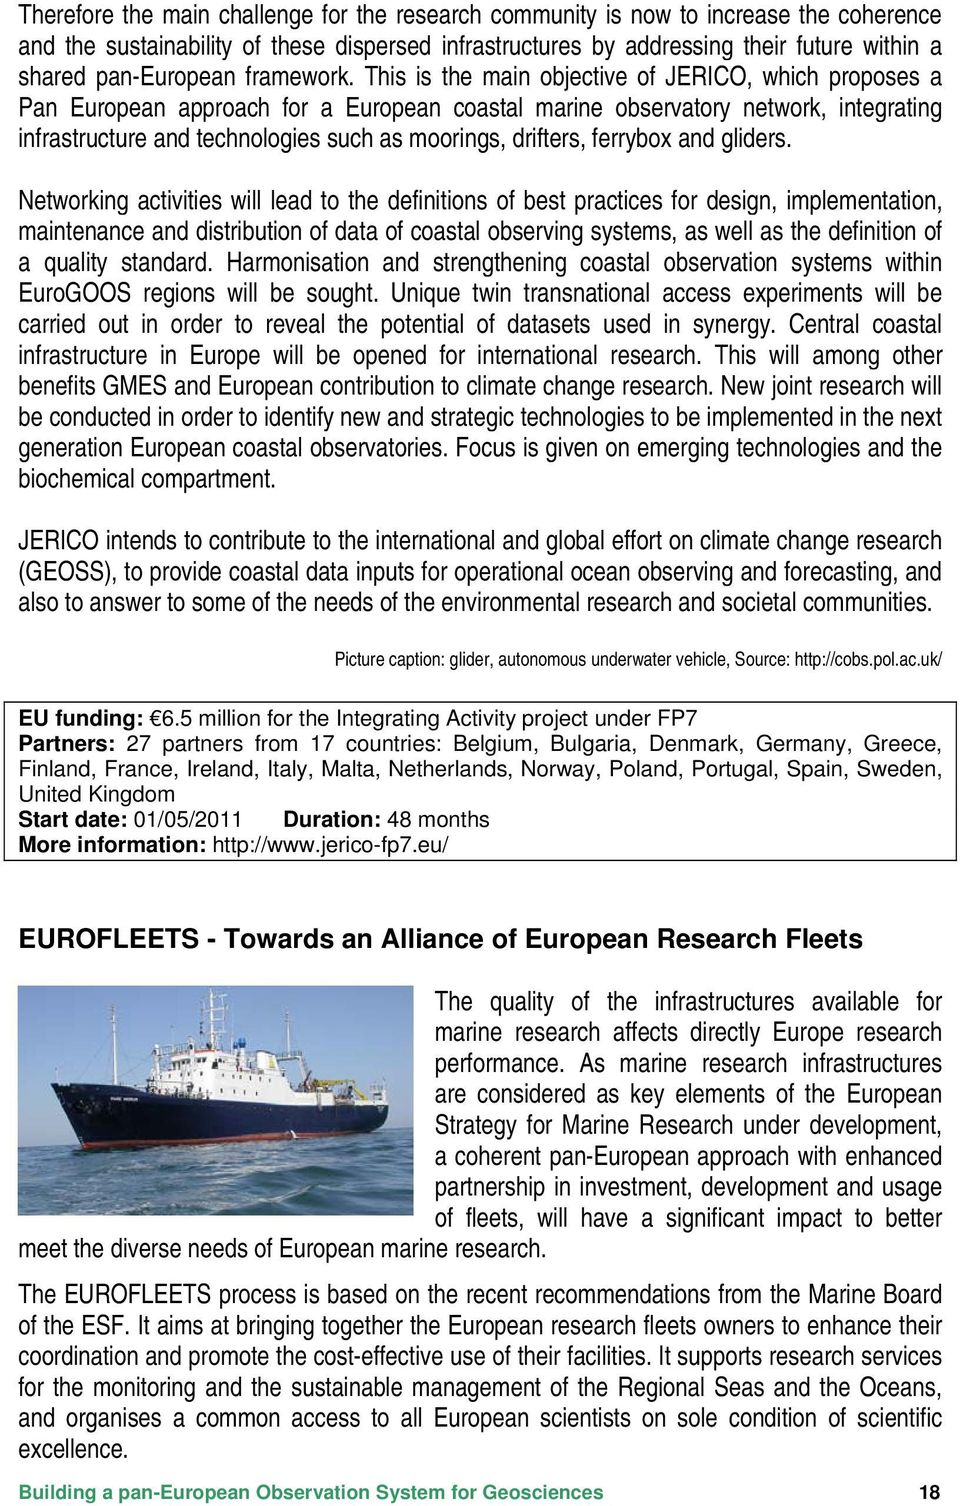 This is the main objective of JERICO, which proposes a Pan European approach for a European coastal marine observatory network, integrating infrastructure and technologies such as moorings, drifters,